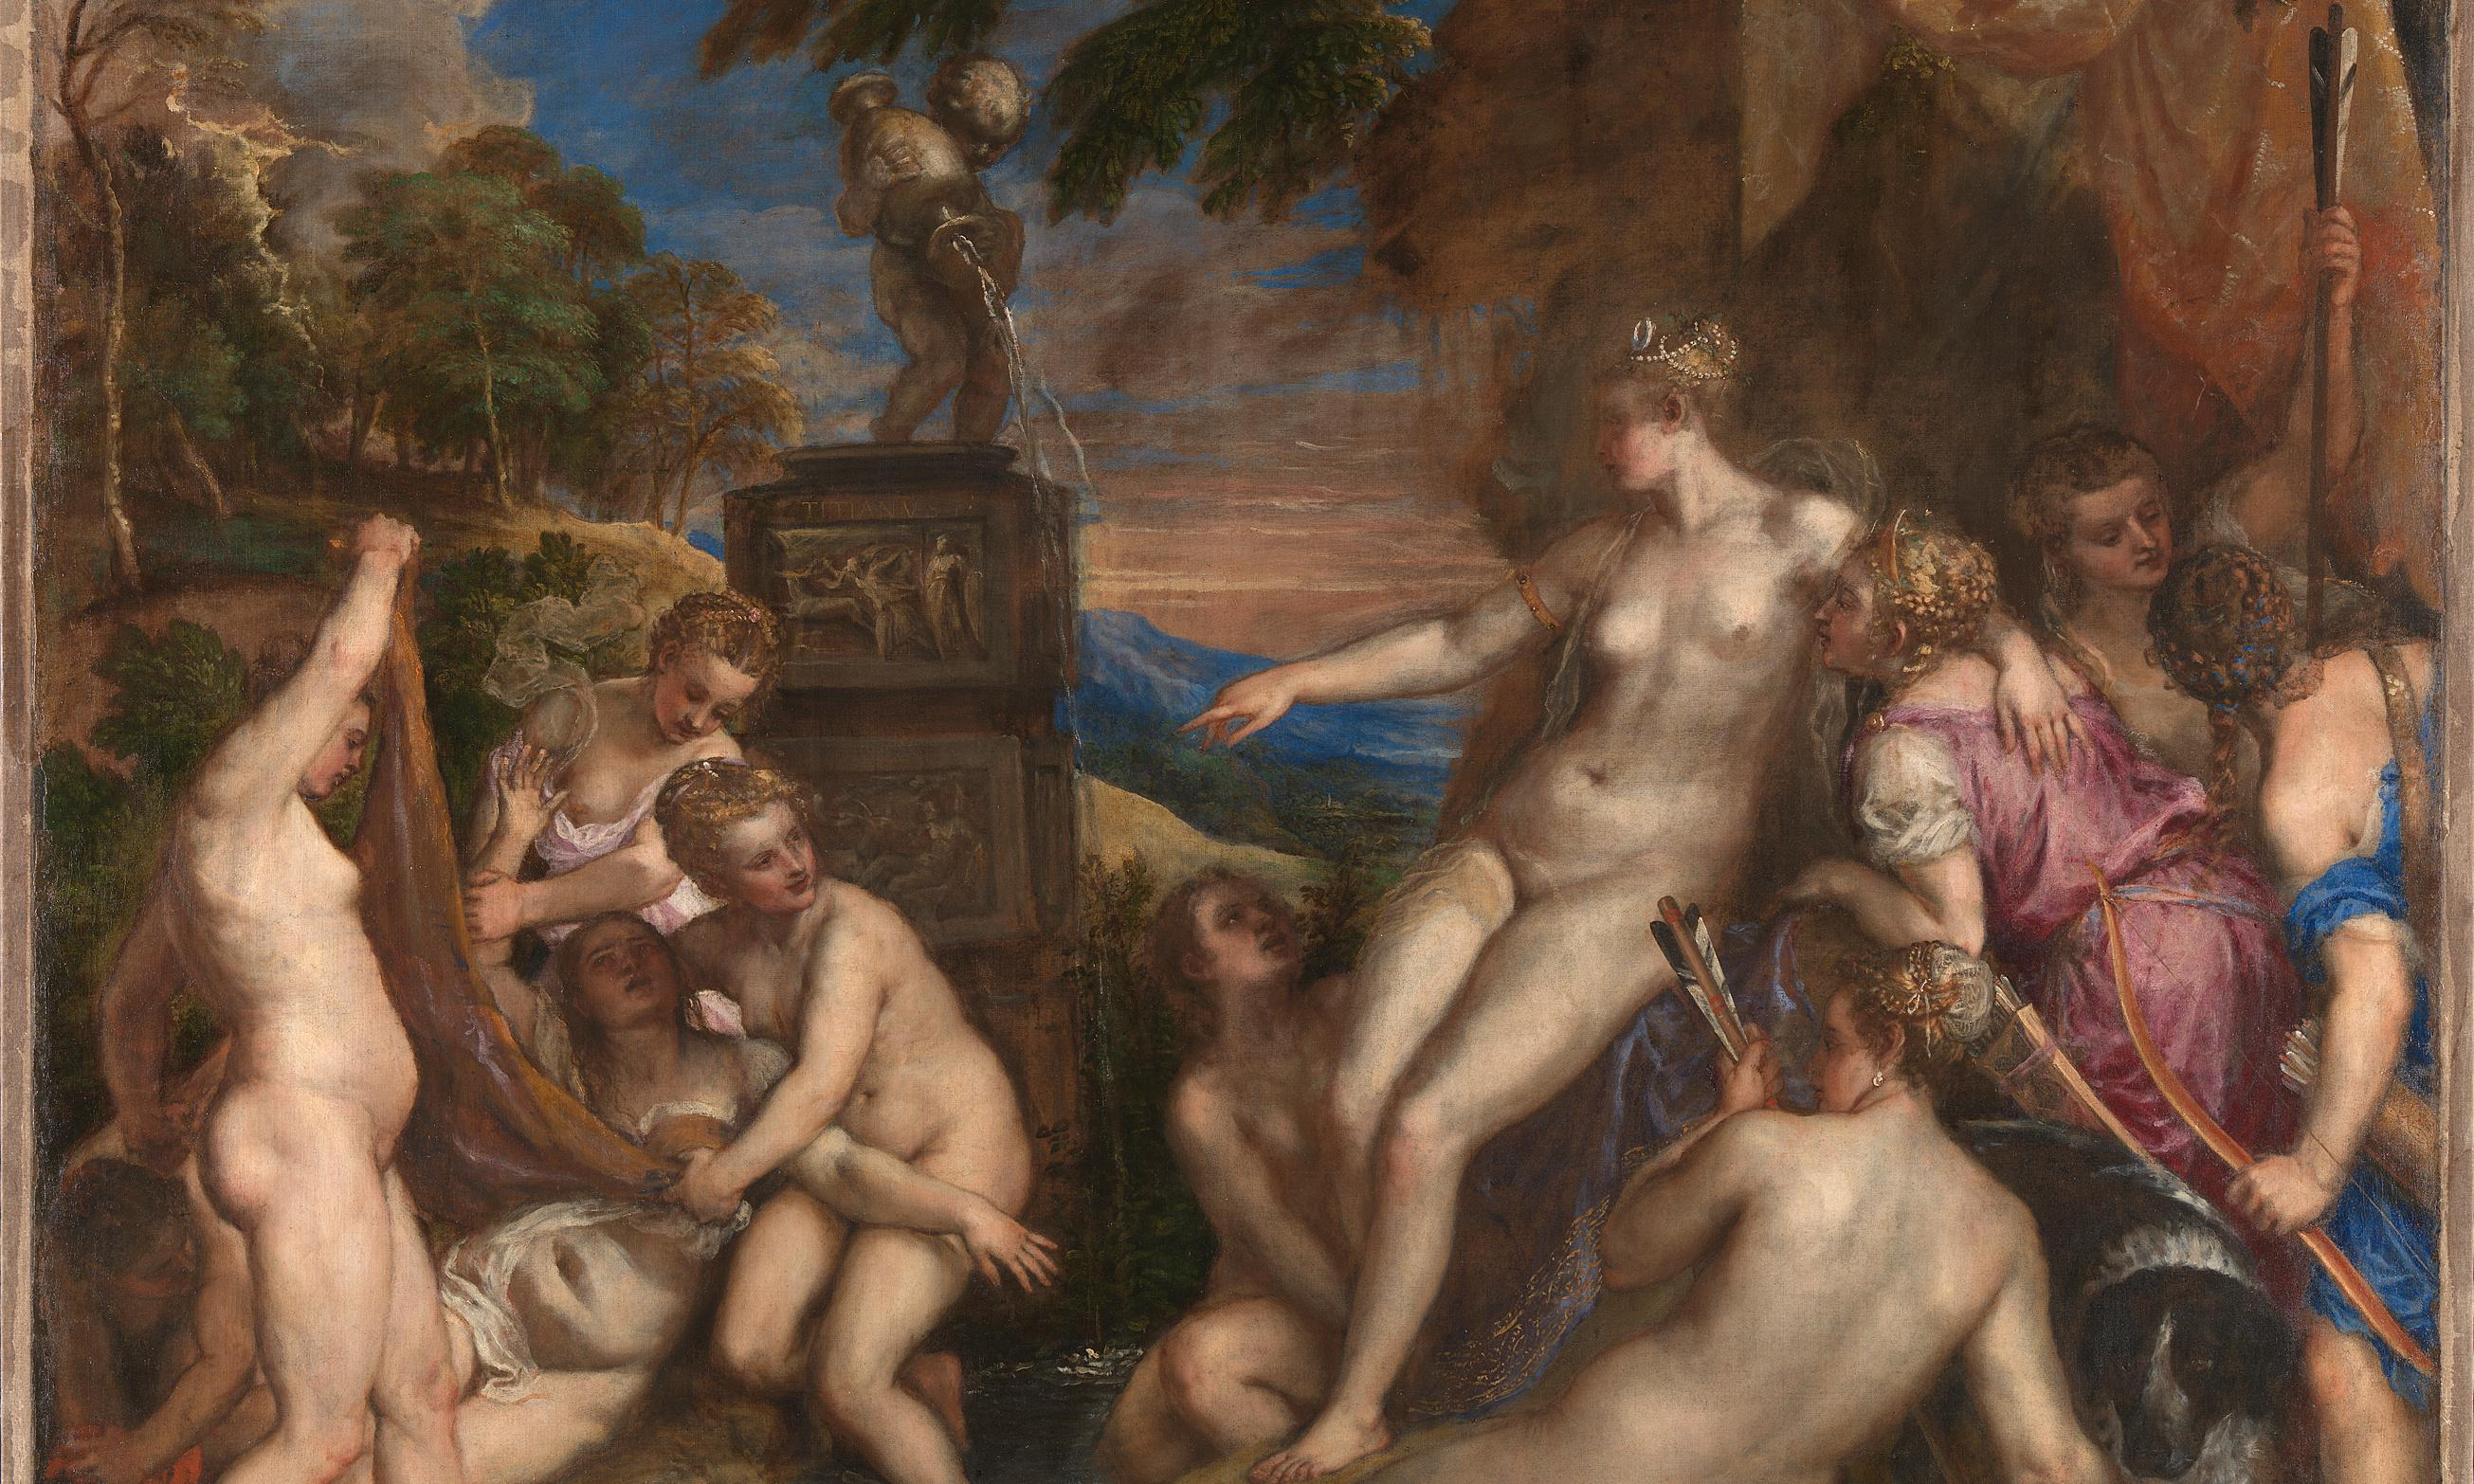 Titian masterpieces to be displayed together for first time since 1704